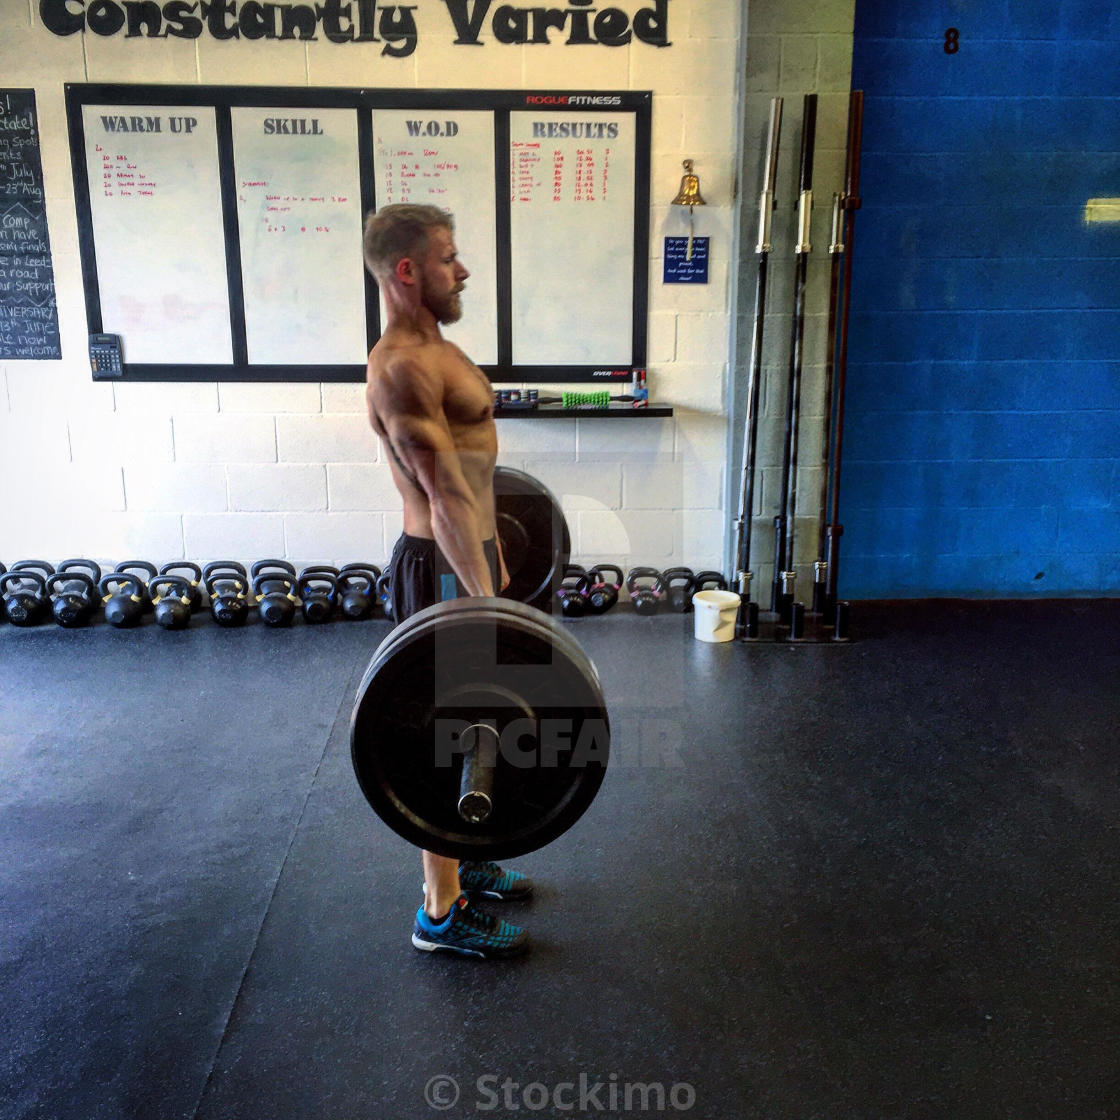 Male performs deadlift - License, download or print for